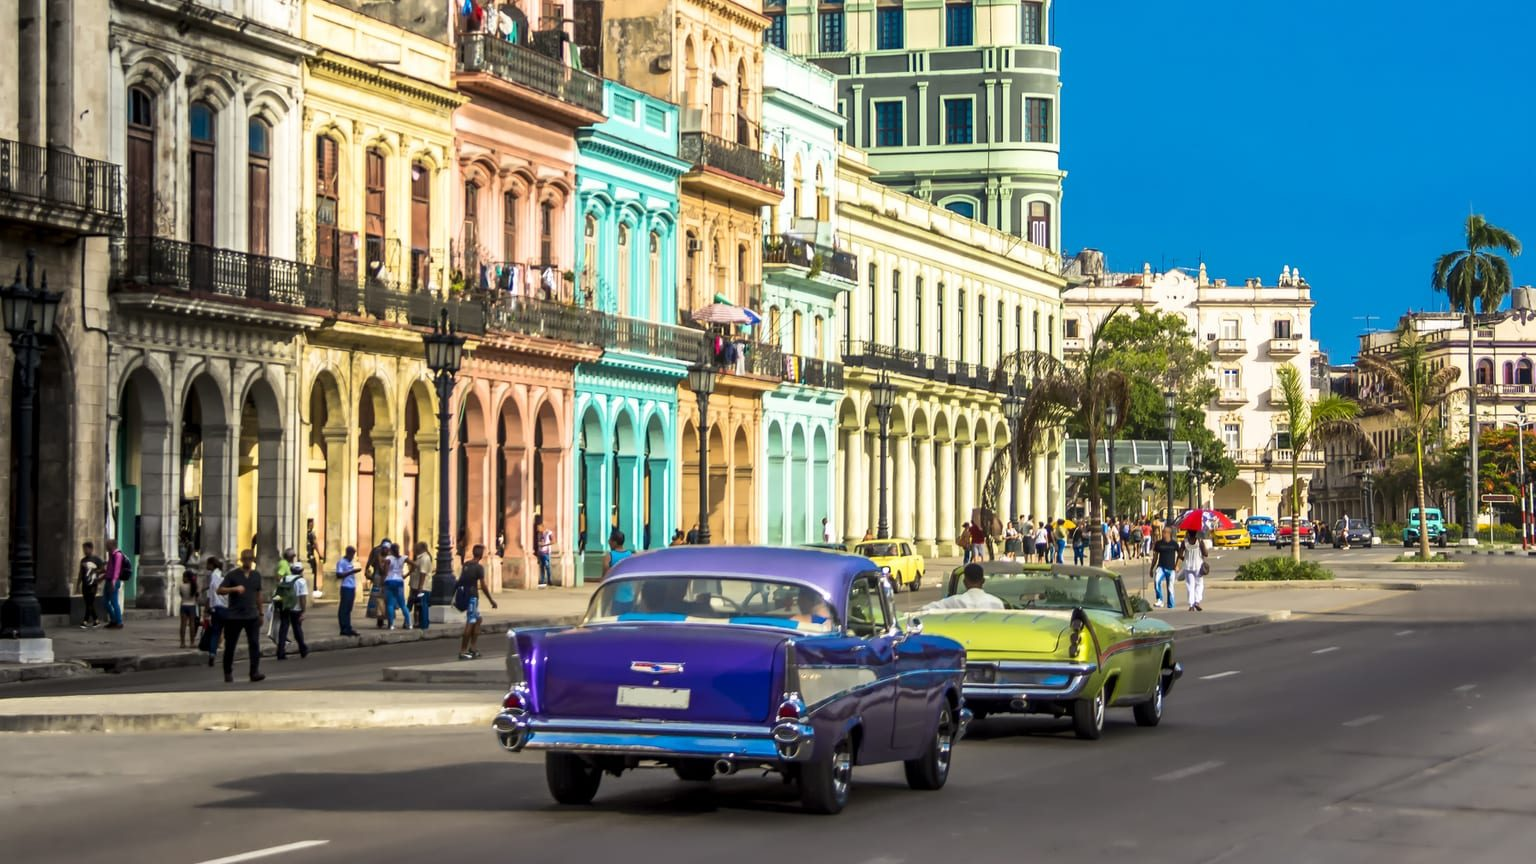 Vintage car driving down a sunny street in Cuba